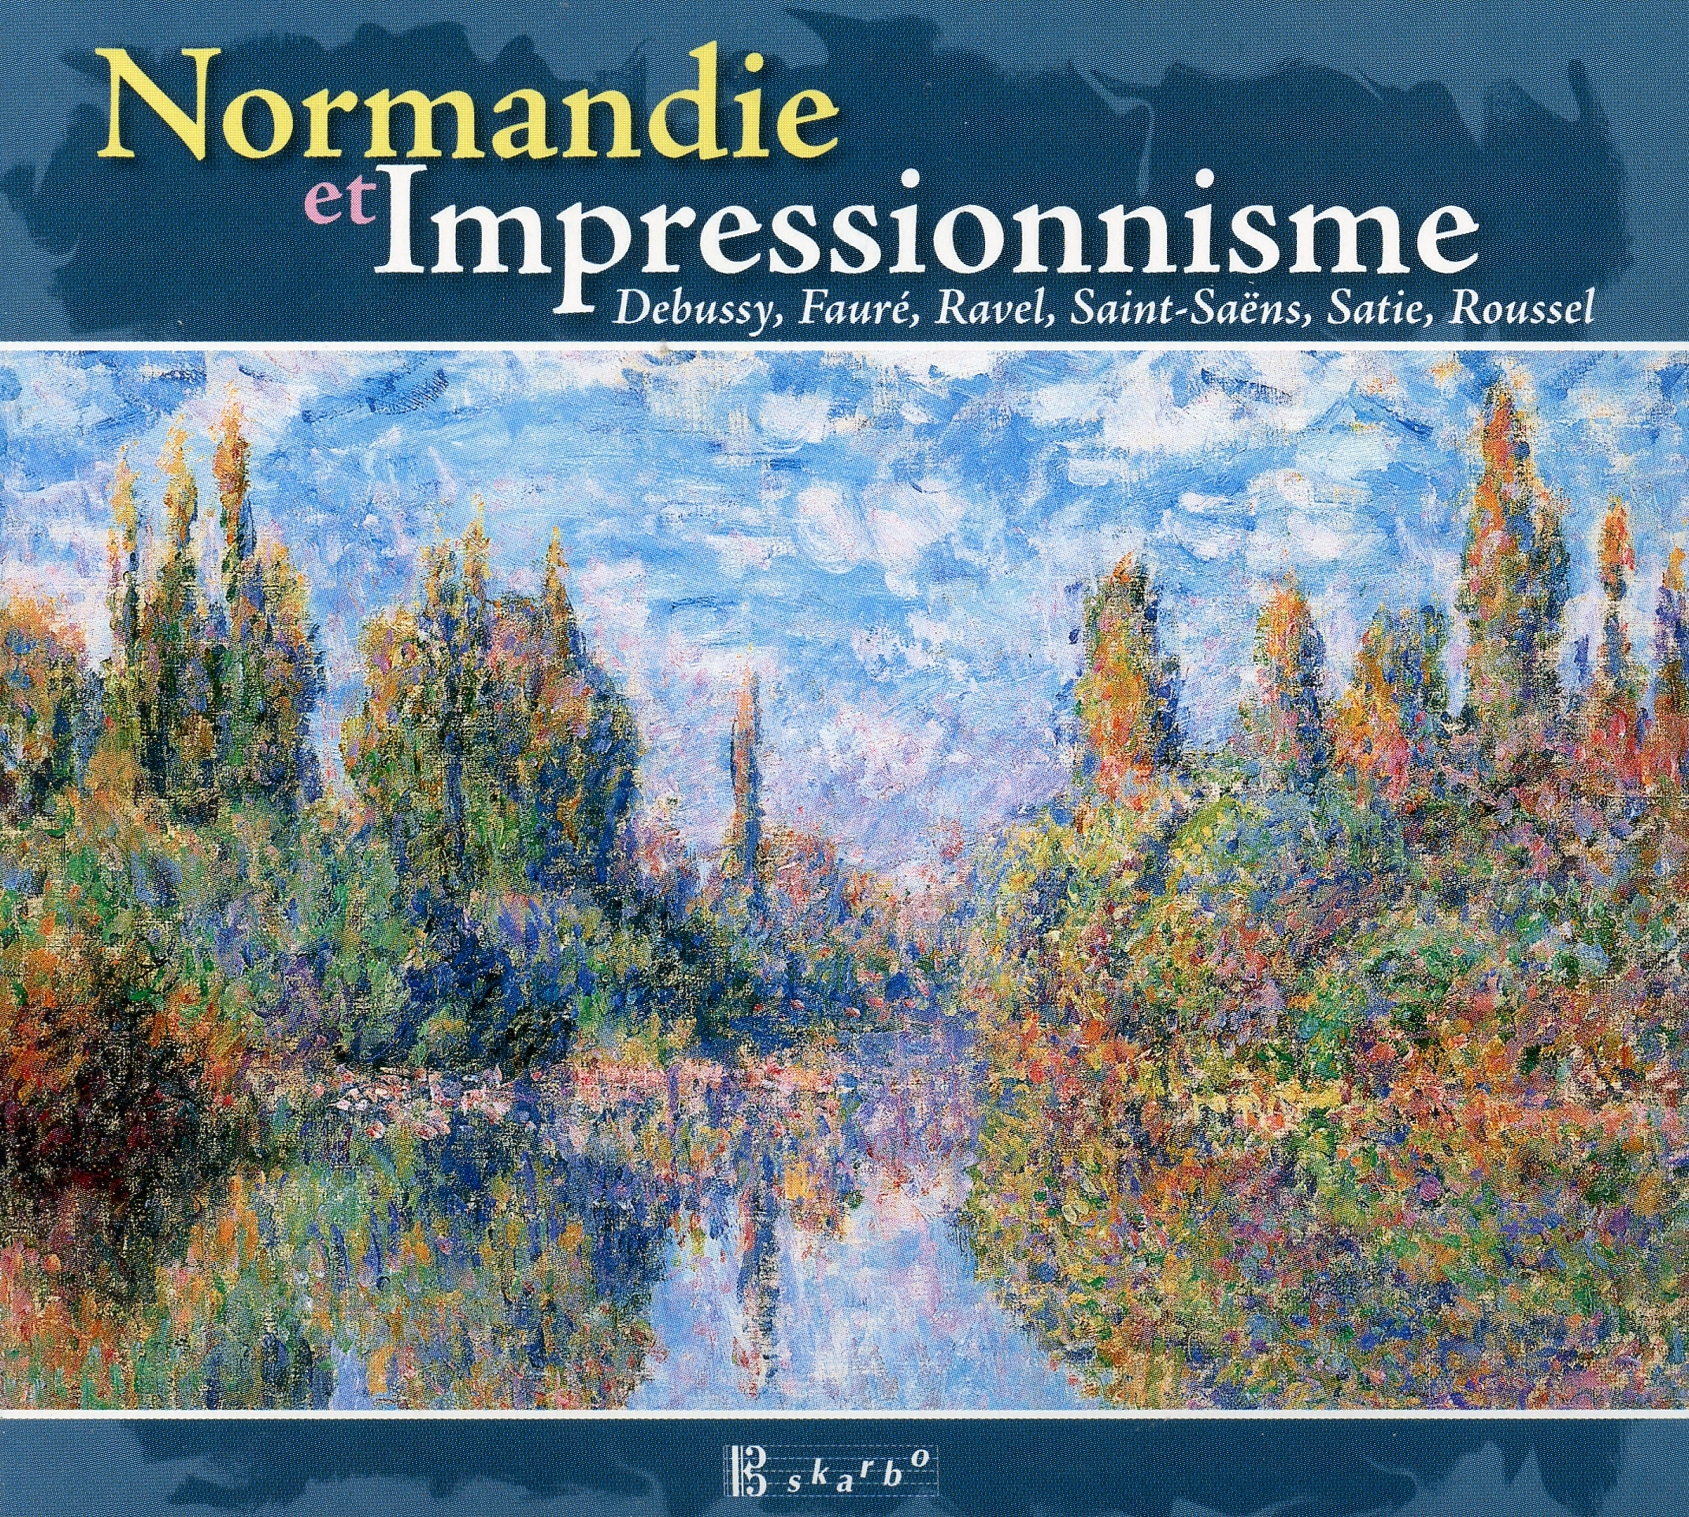 Sonata for Flute, Viola and Harp, Sonata for Flute, Viola and Harp: I. Pastorale